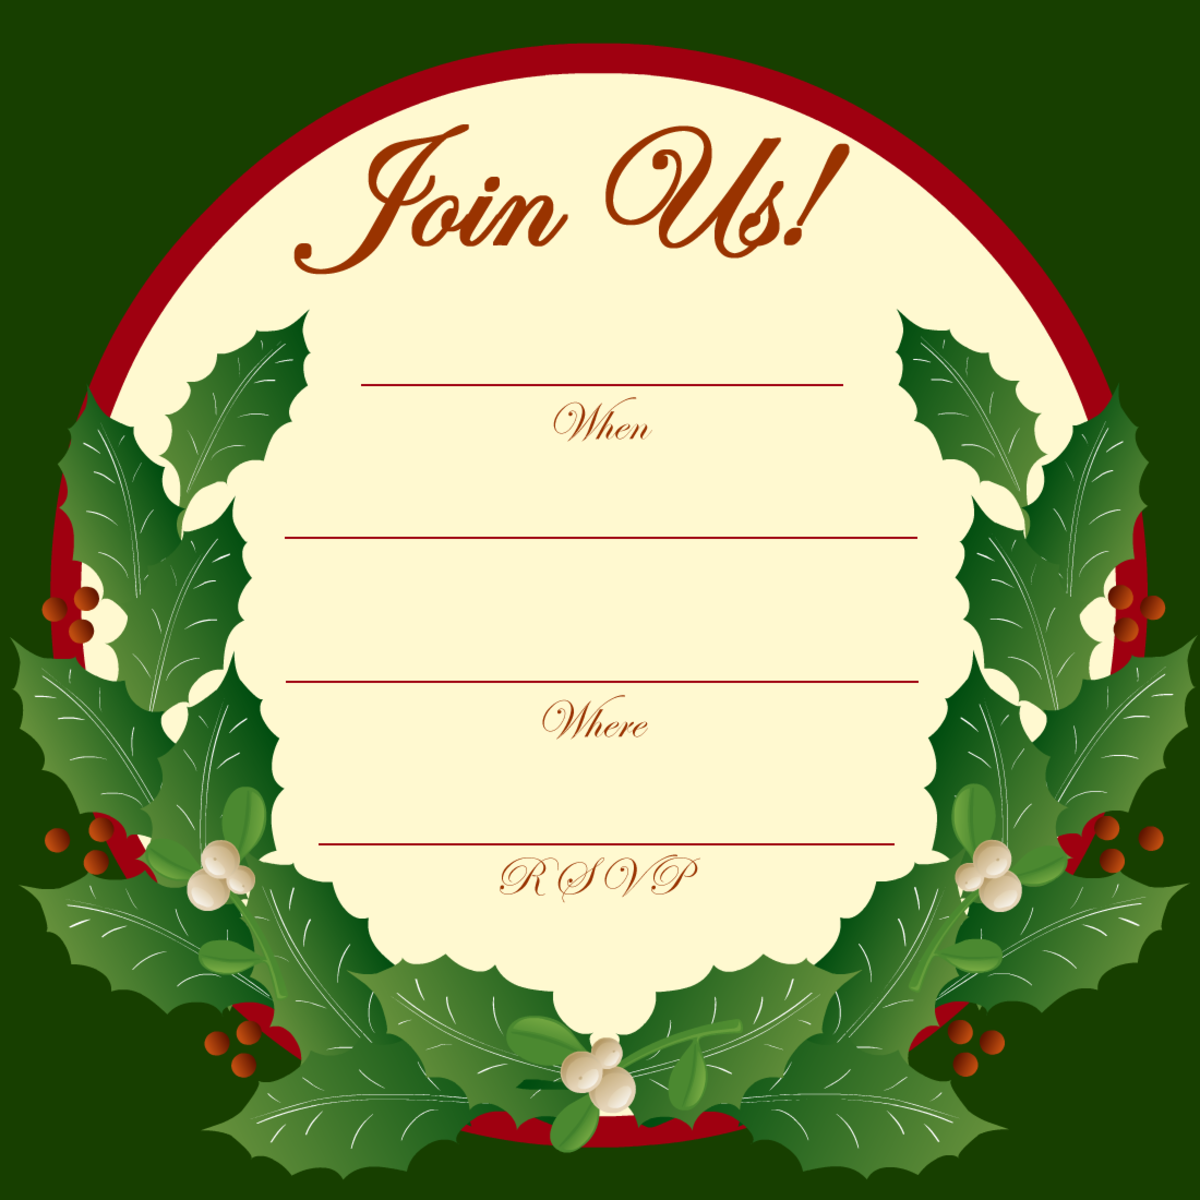 christmas party invitation template publisher wedding invitation microsoft invitation templates wedding for christmas